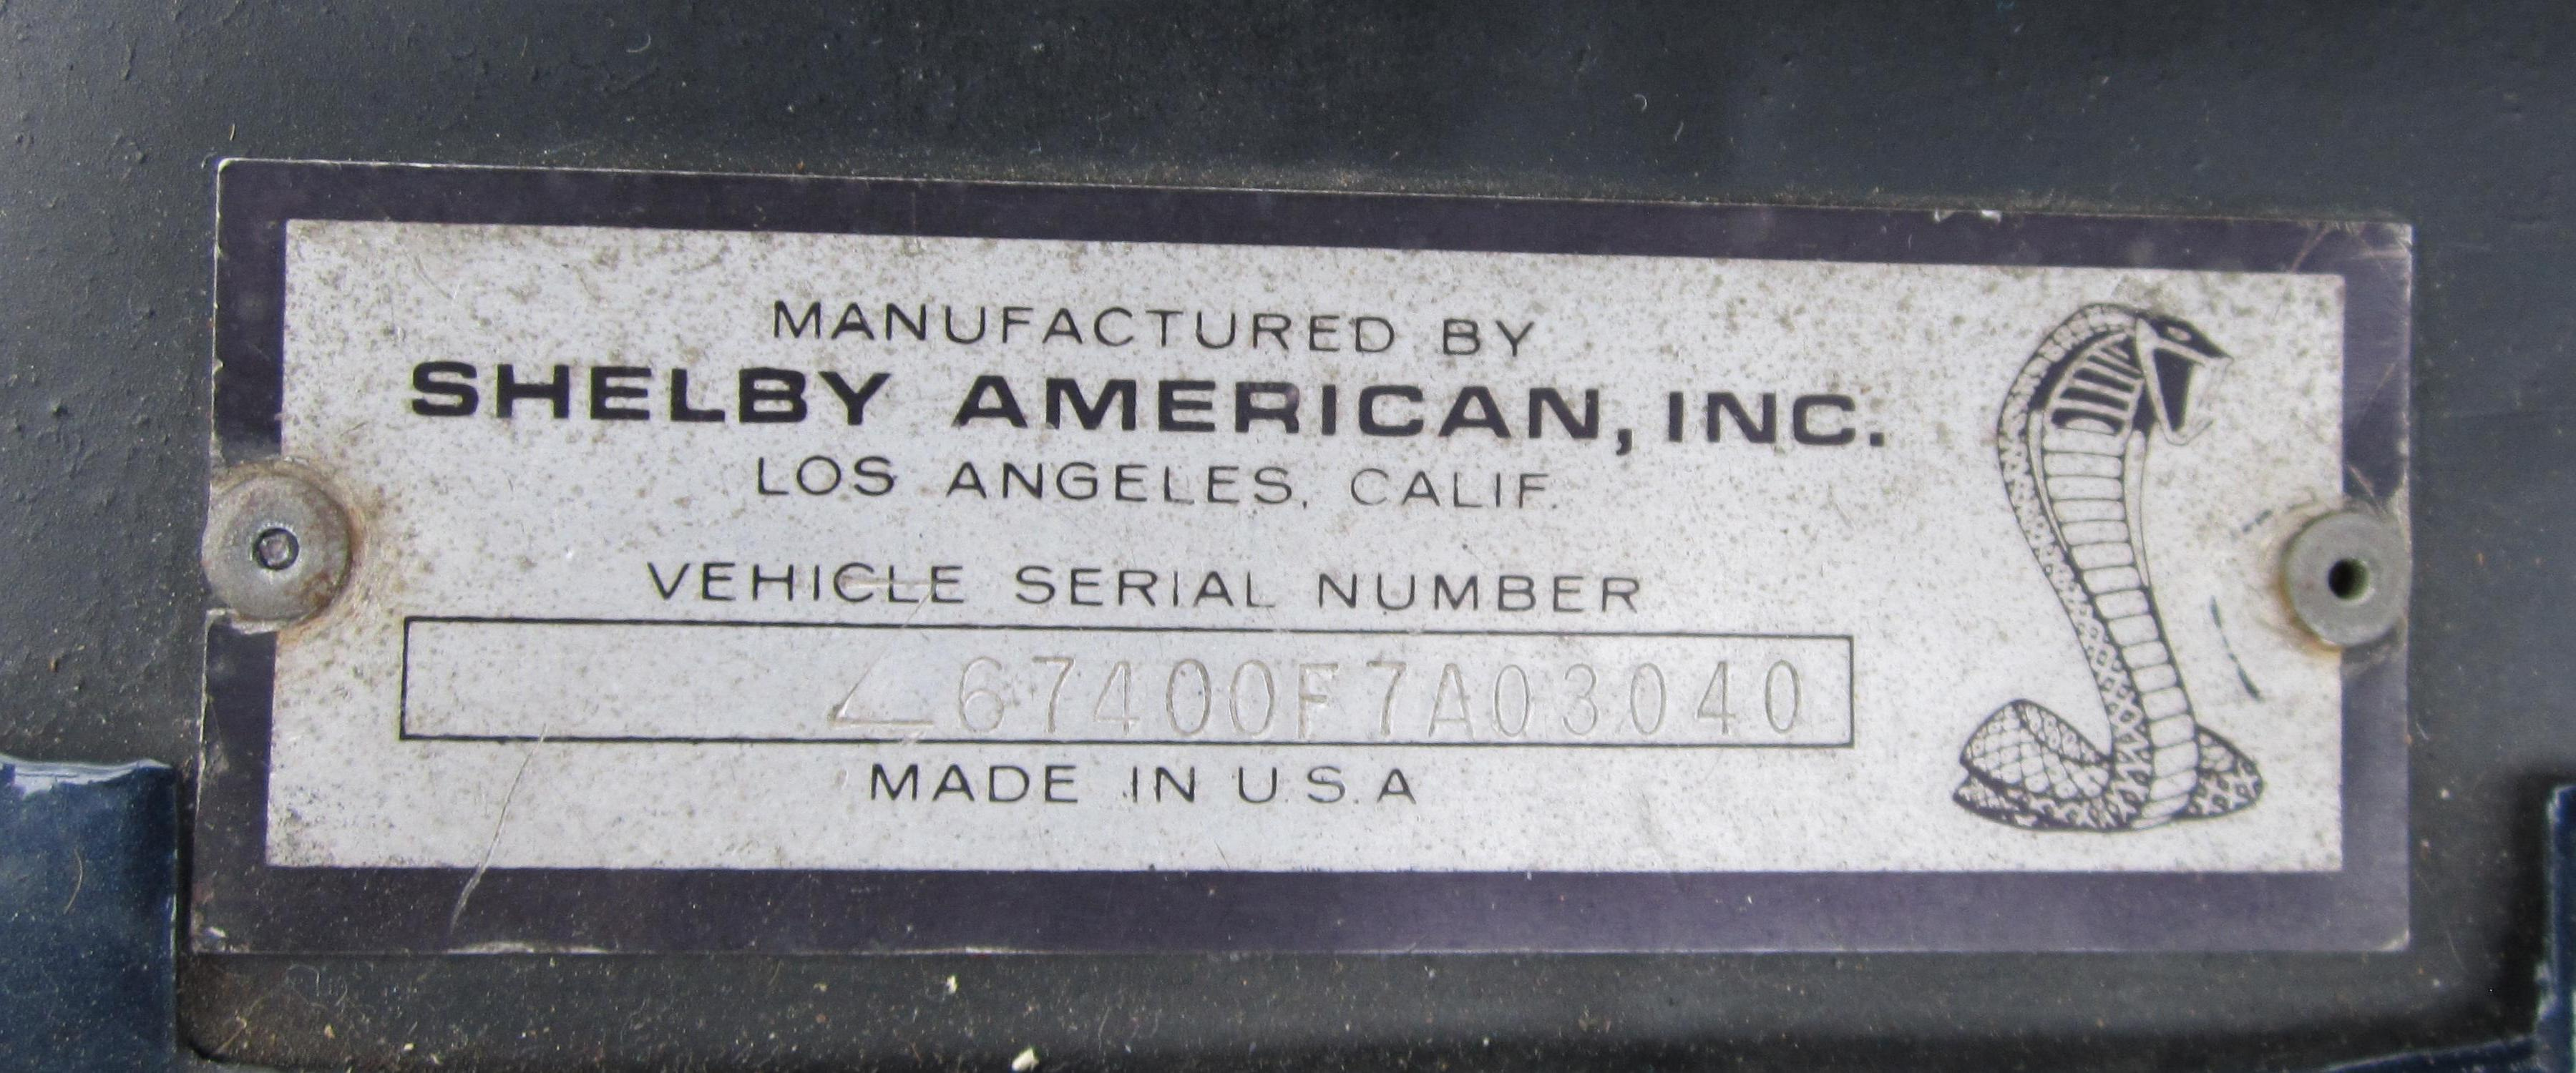 Shelby Production Information - 67400F7A03040